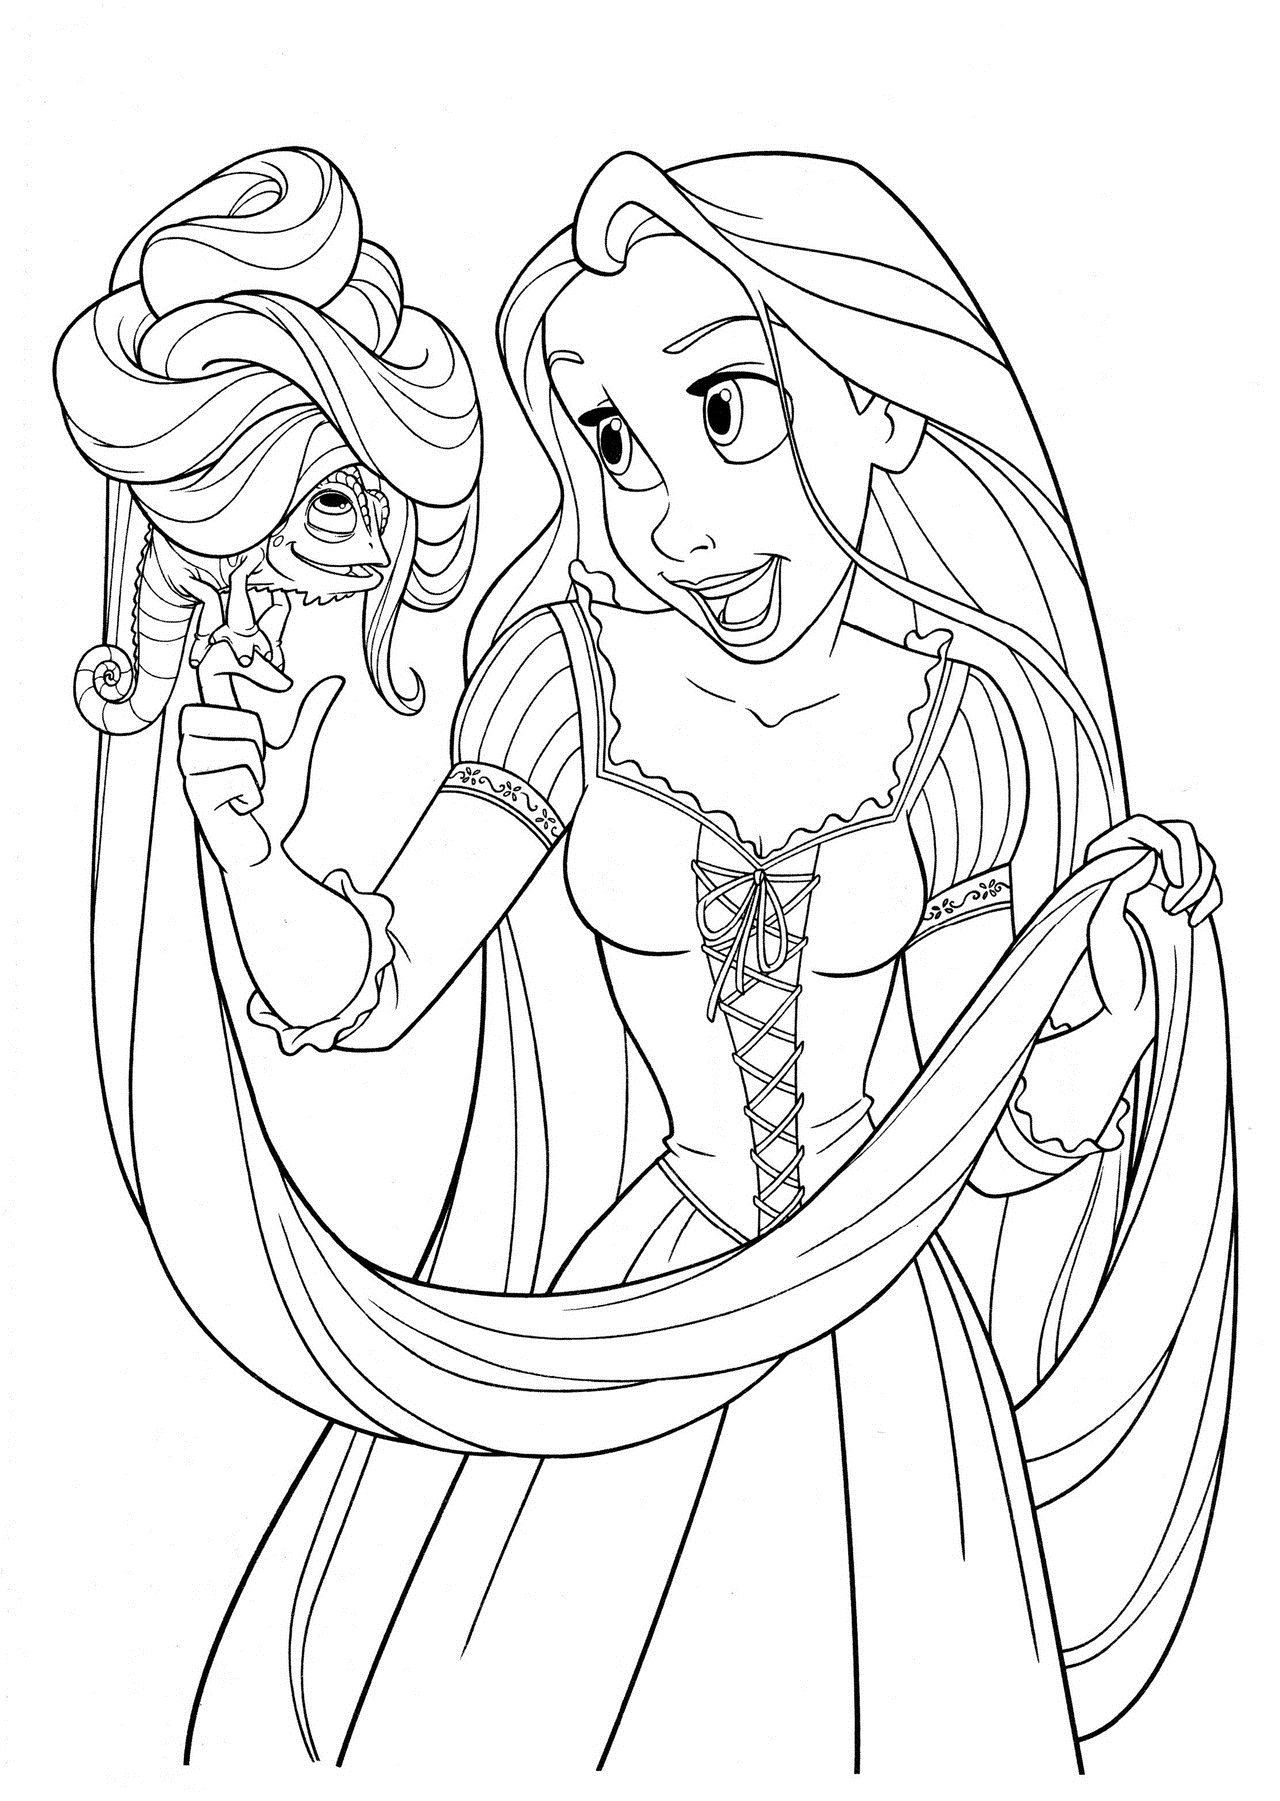 Tangled Rapunzel and Pascal Coloring Pages